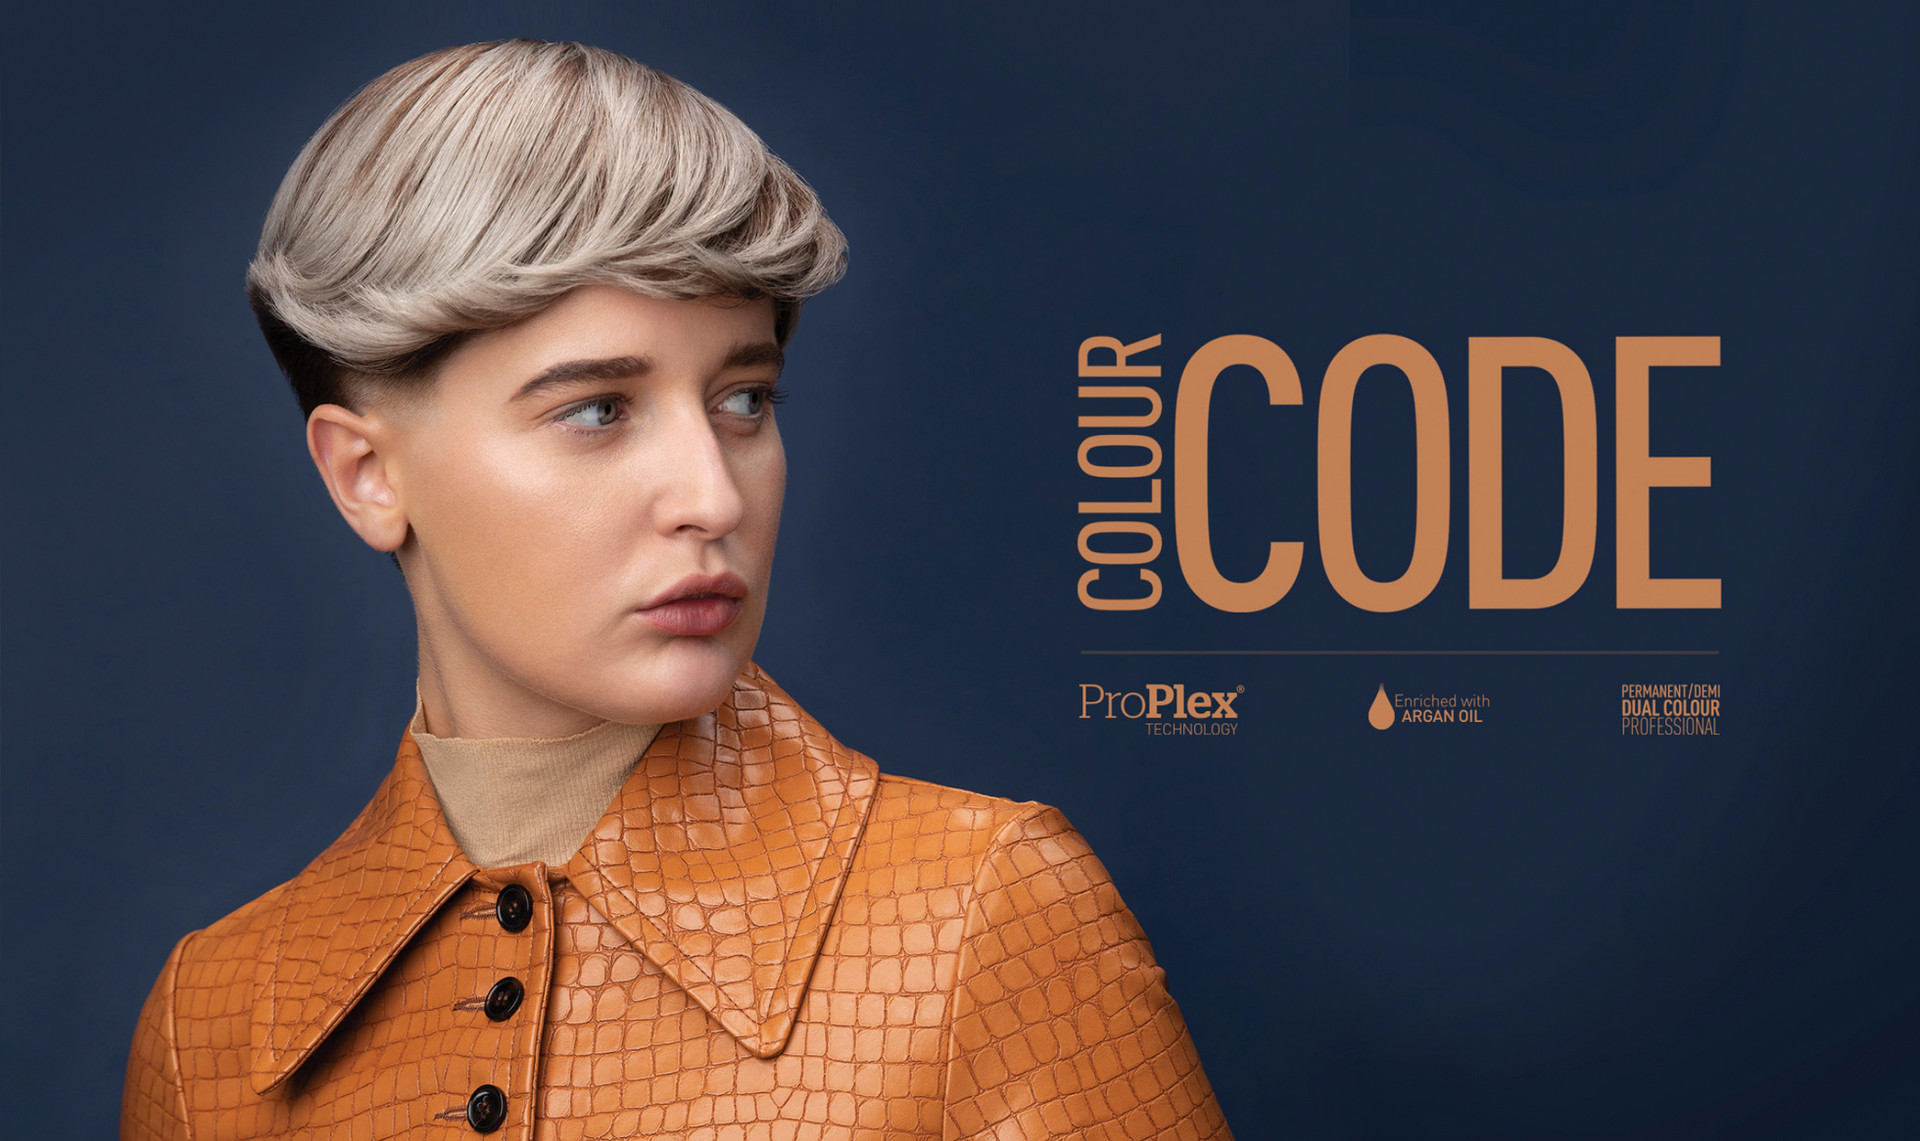 ColourCode Branding, Design, Product Design & Marketing